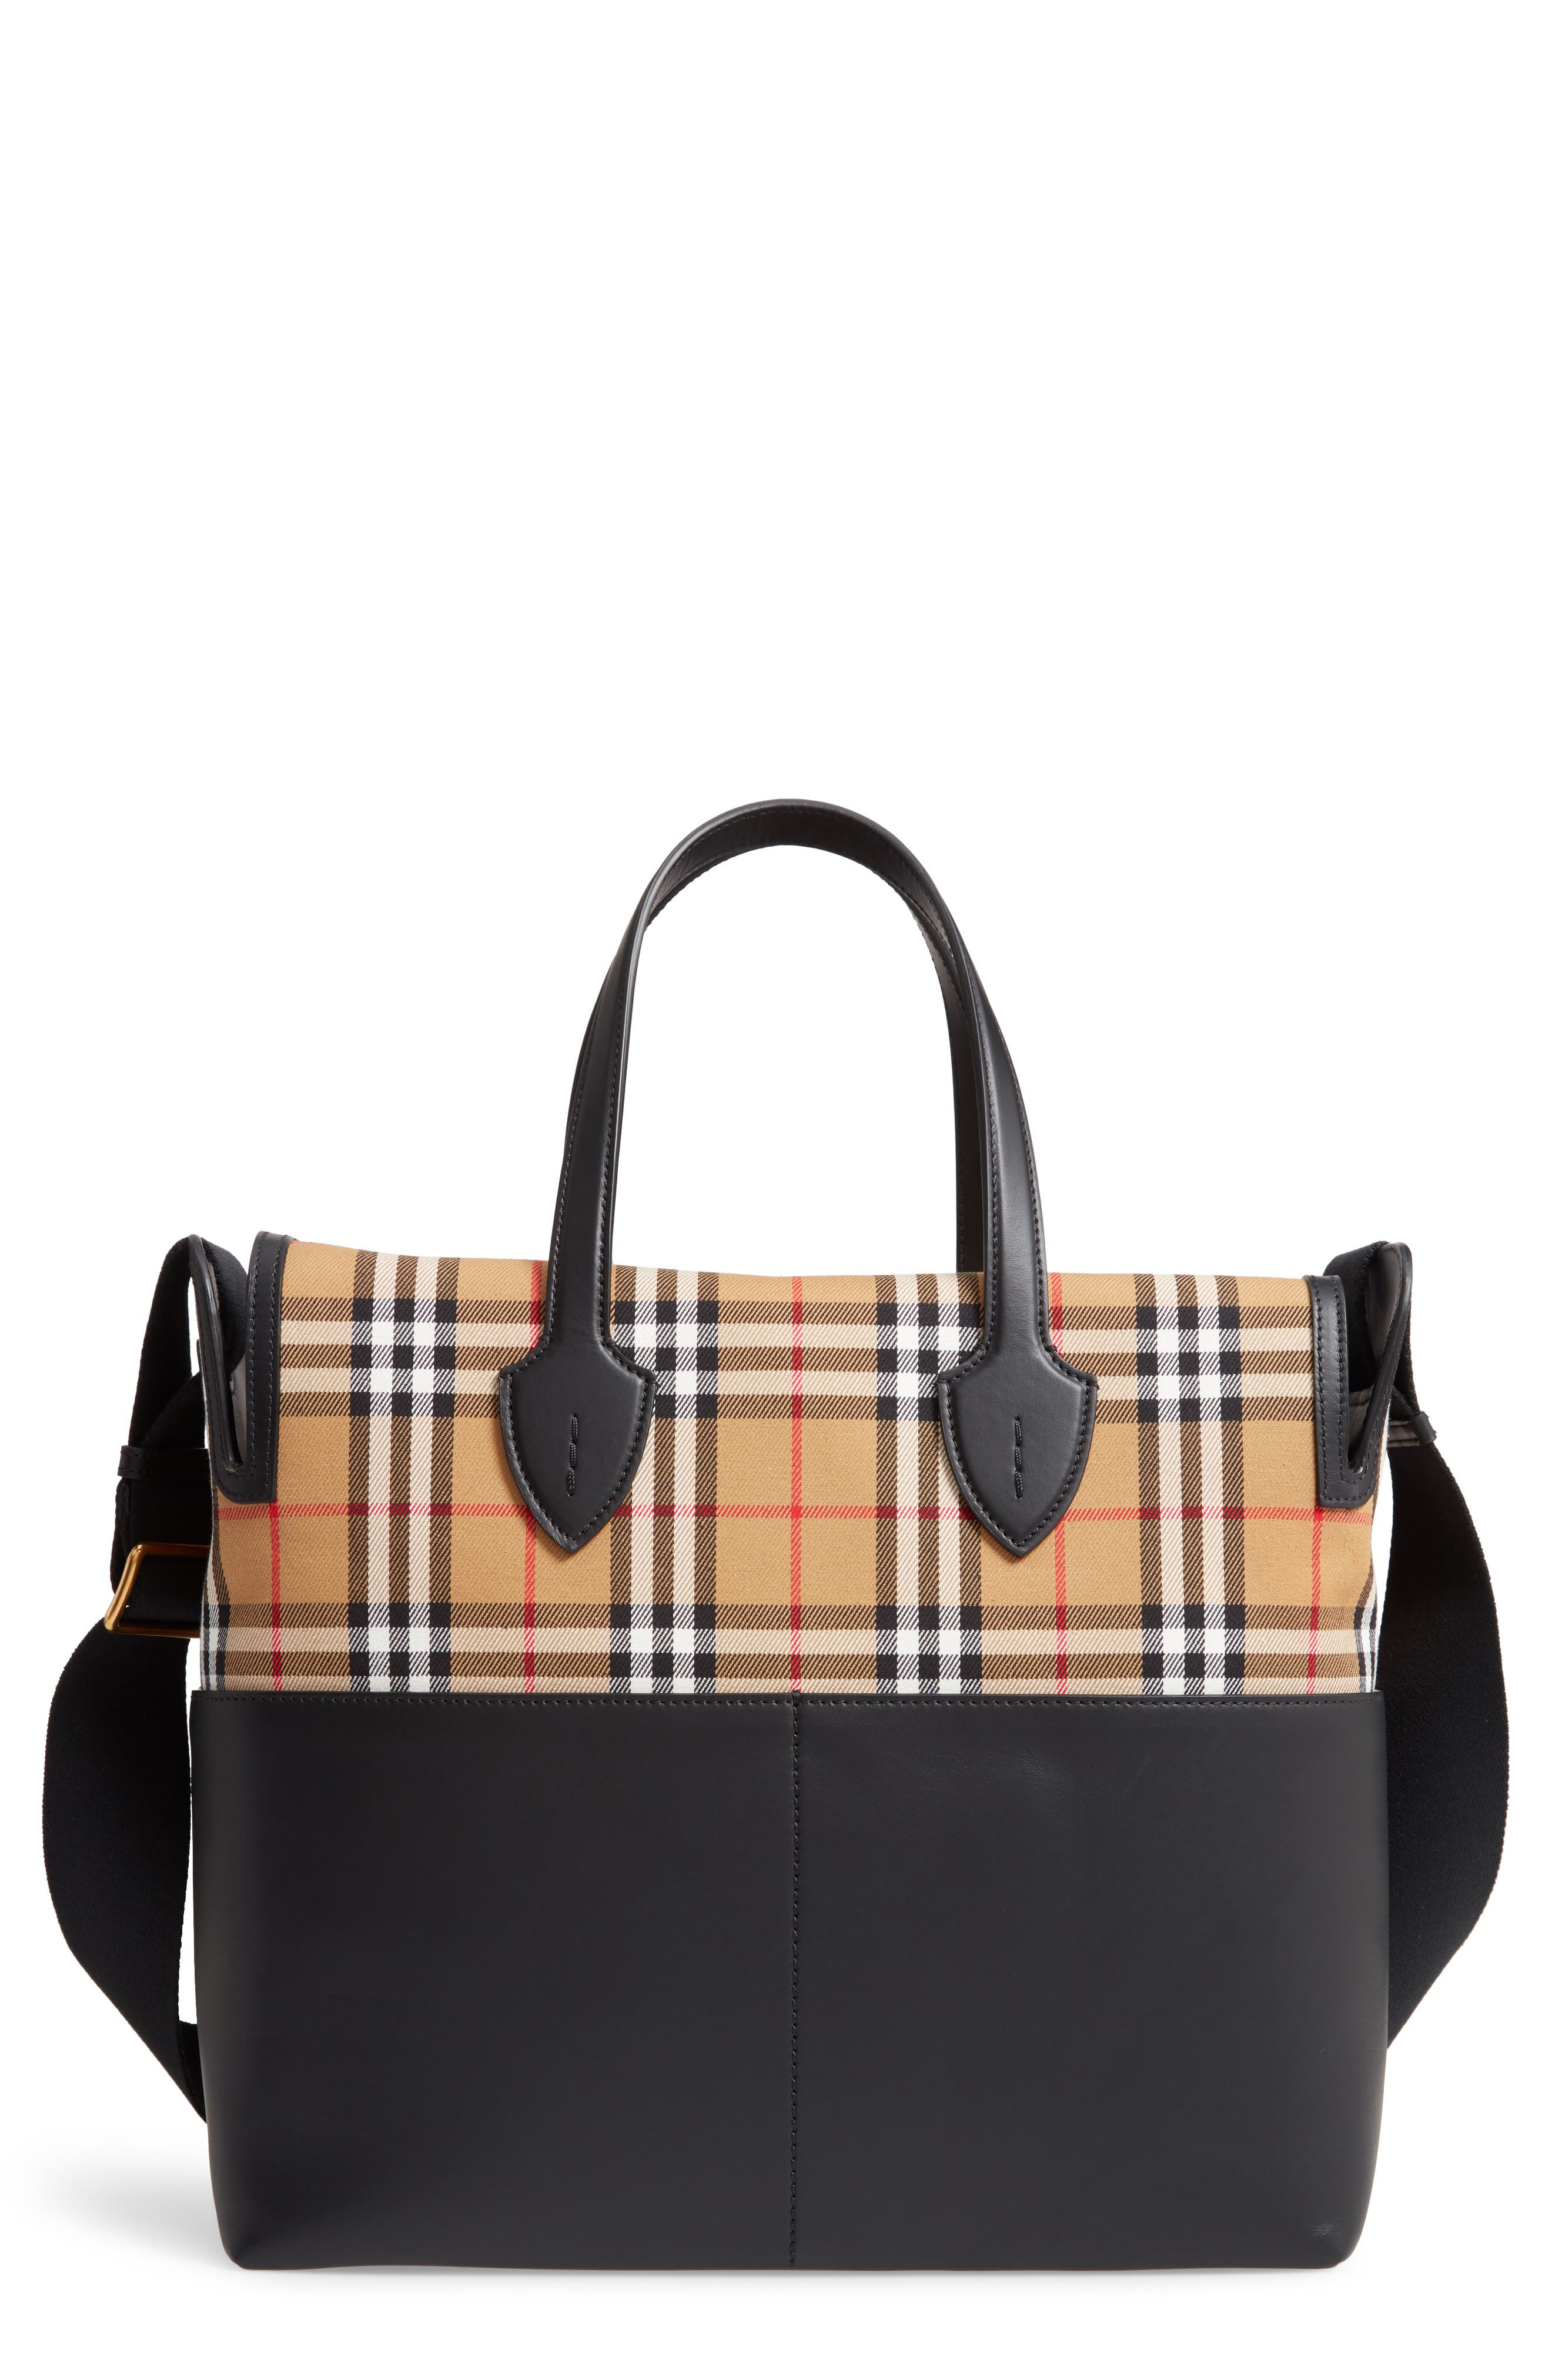 Kingswood Vintage Check & Leather Diaper Tote,                             Main thumbnail 1, color,                             BLACK